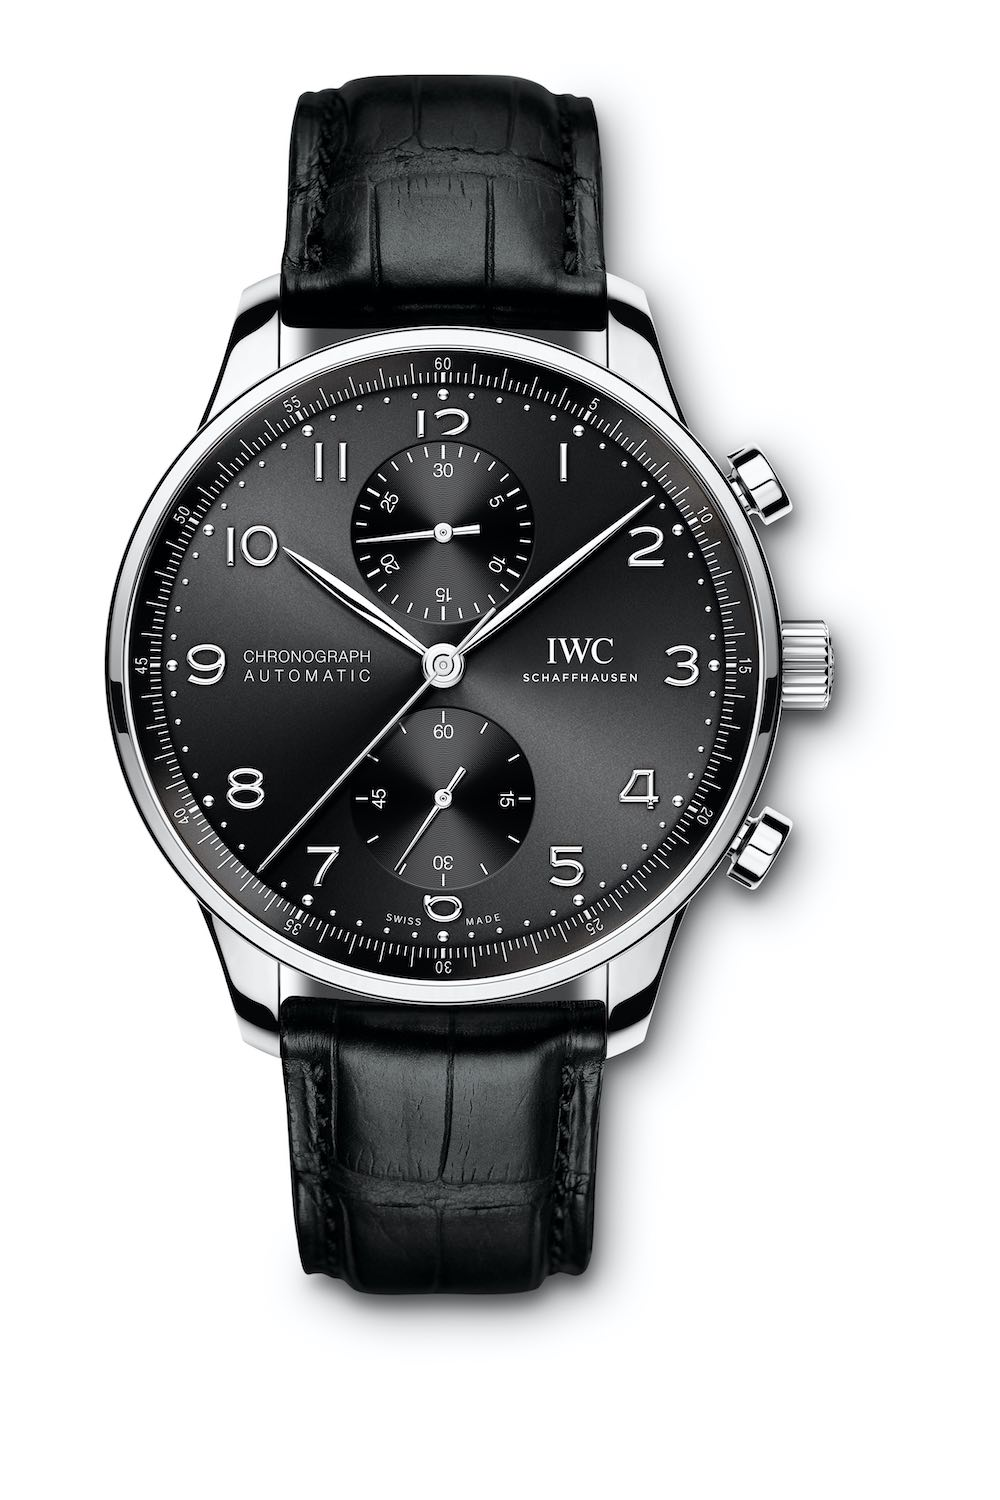 IWC Portugieser Chronograph iw3716 in-house calibre 69335 - iw371609